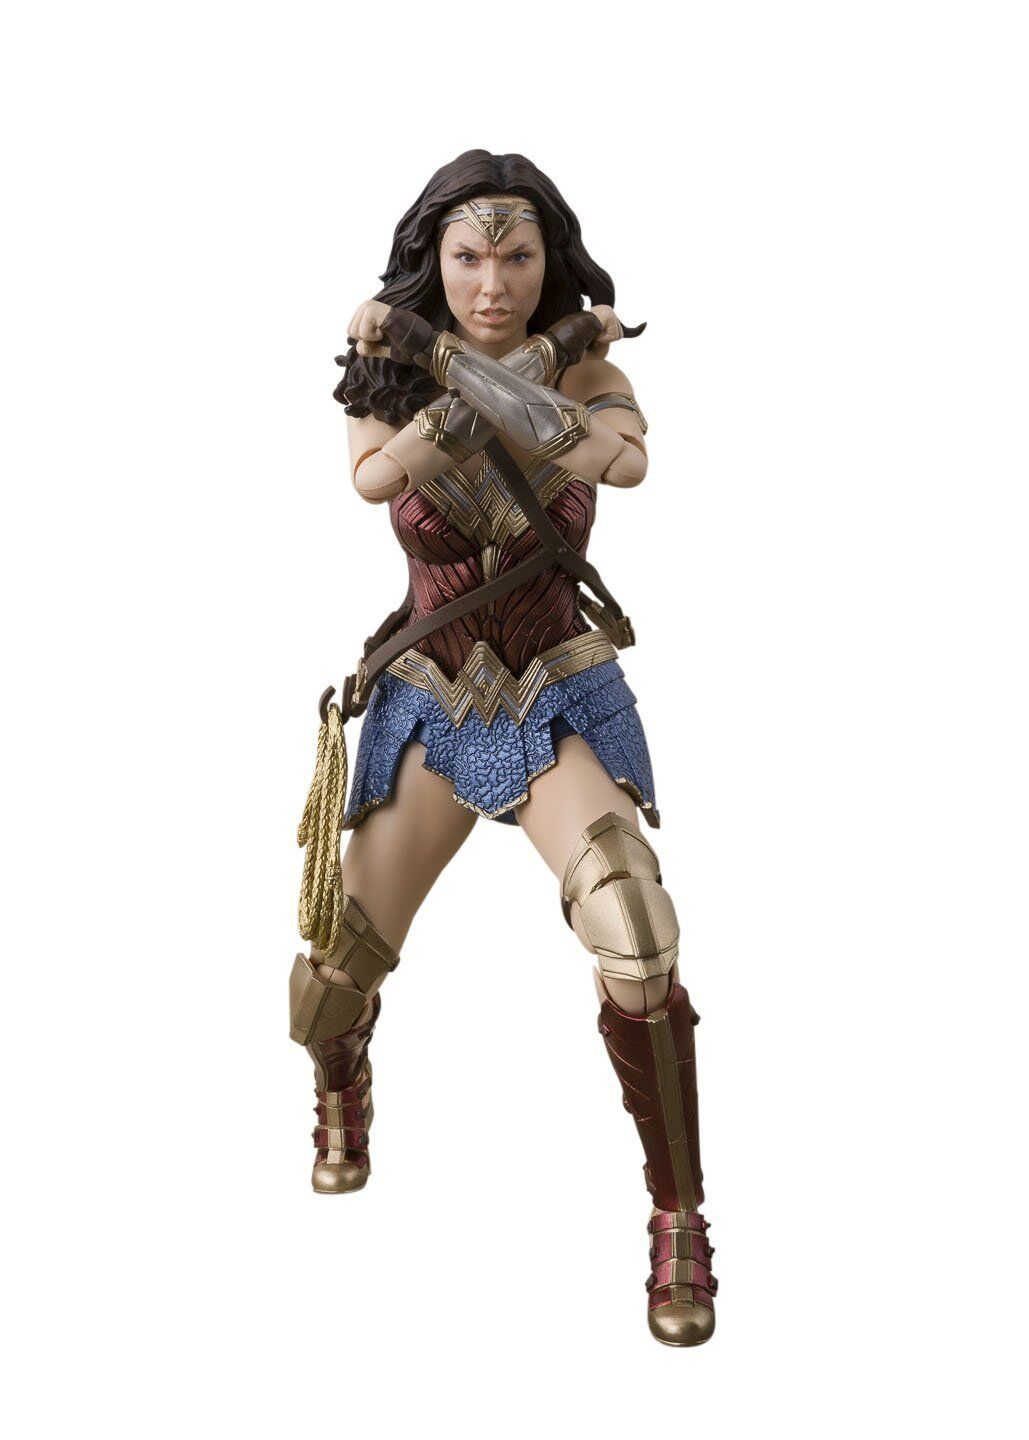 Bandai S.H. Figuarts Wonder Woman  JUSTICE LEAGUE  150mm Action Figure